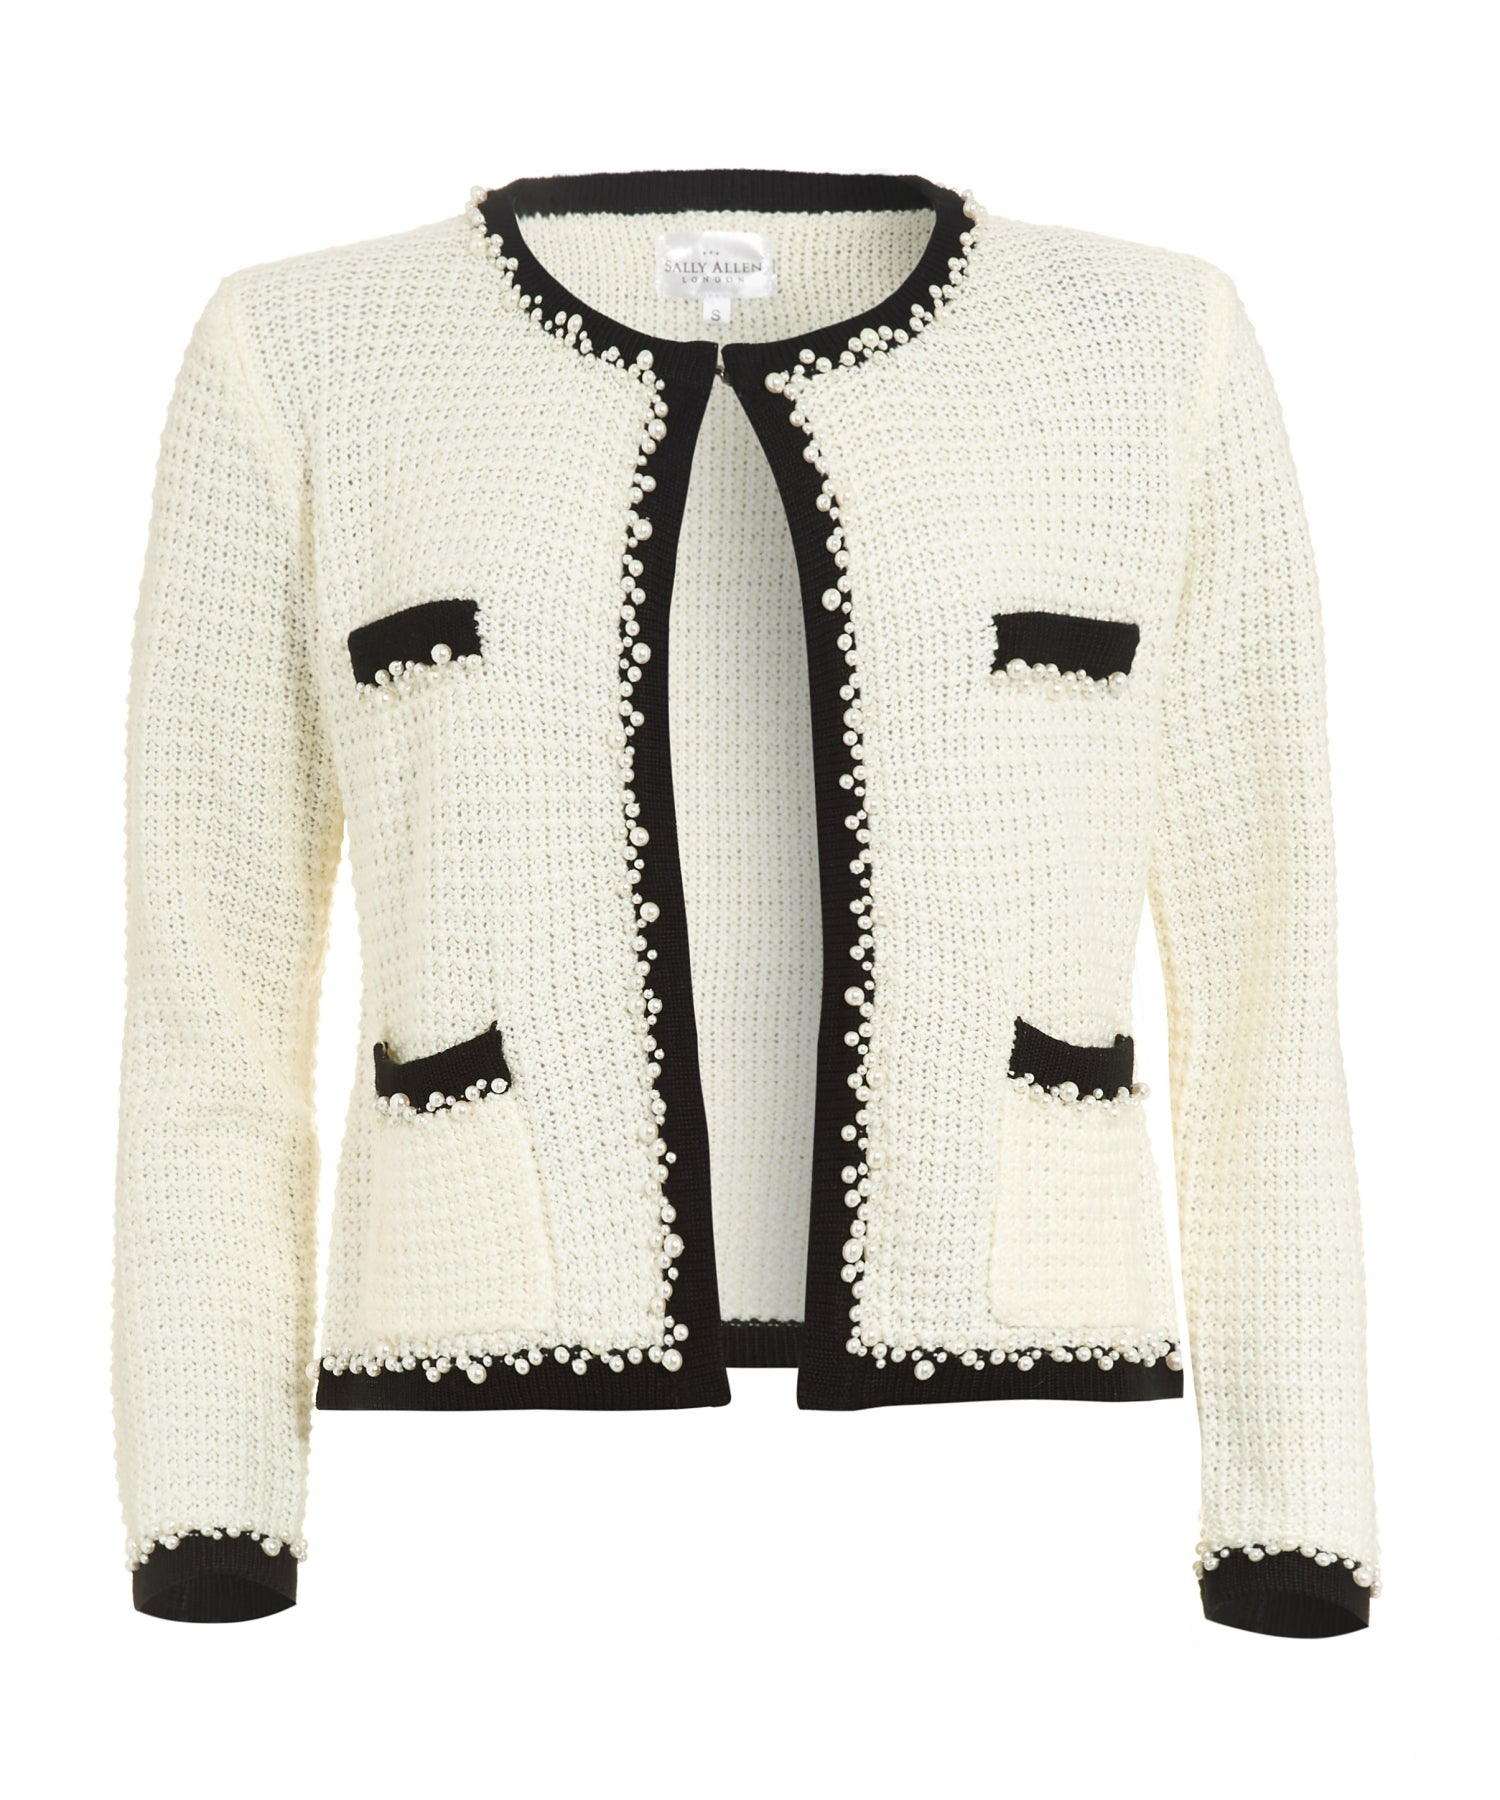 Front of French style little white knitted jacket as inspired by Coco Chanel